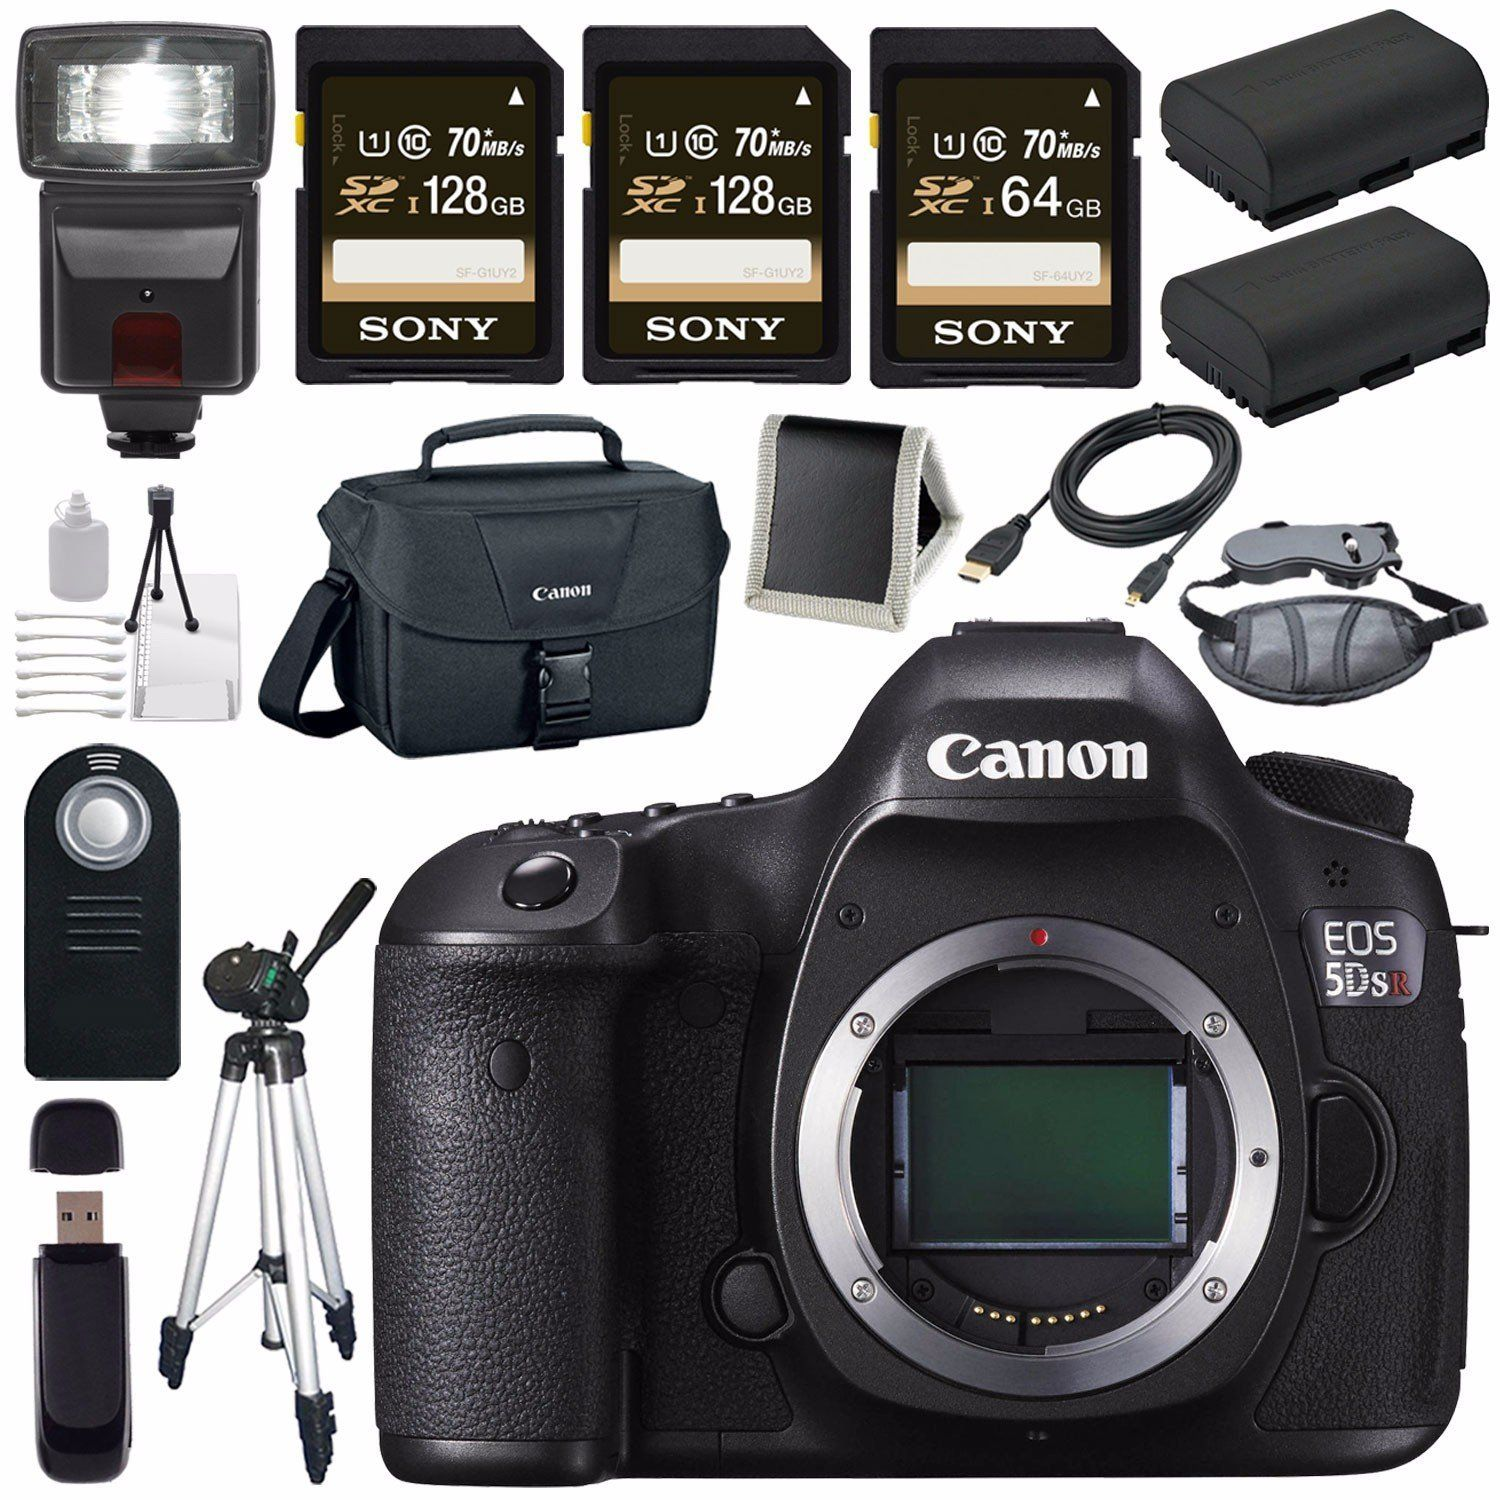 Full Frame Canon Eos 5ds R 5dsr Dslr Camera Lpe 6 Lithium Ion Battery Canon 100es Eos Shoulder Bag Bundle 4 Can Digital Camera Photography Gear Sony Camera